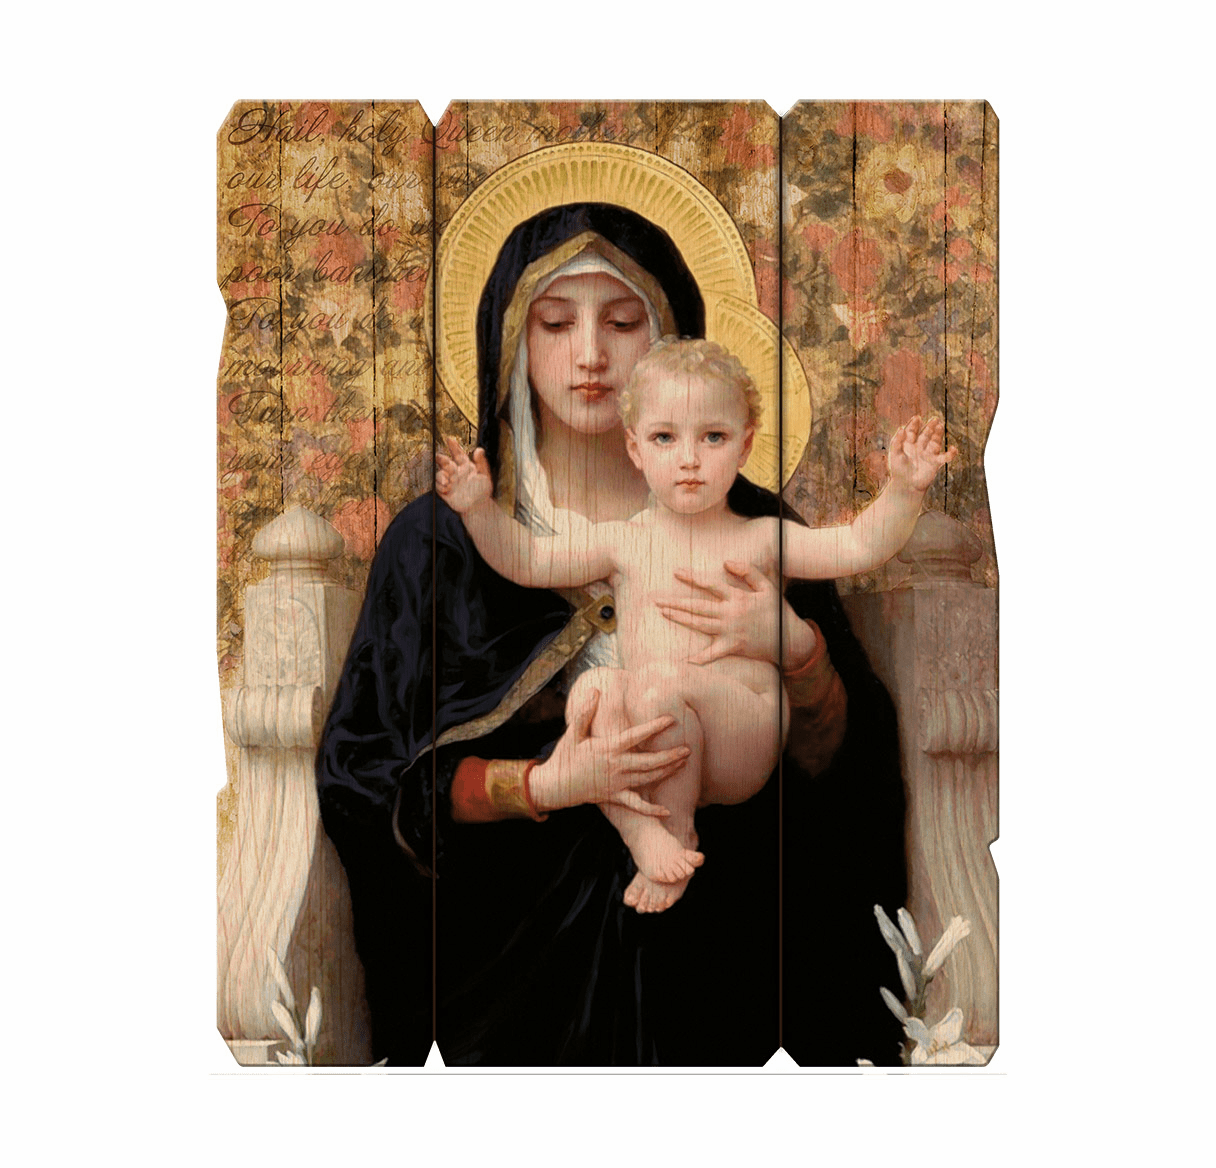 Hirten Bouguereau Madonna and Child Vintage Wall Plaque